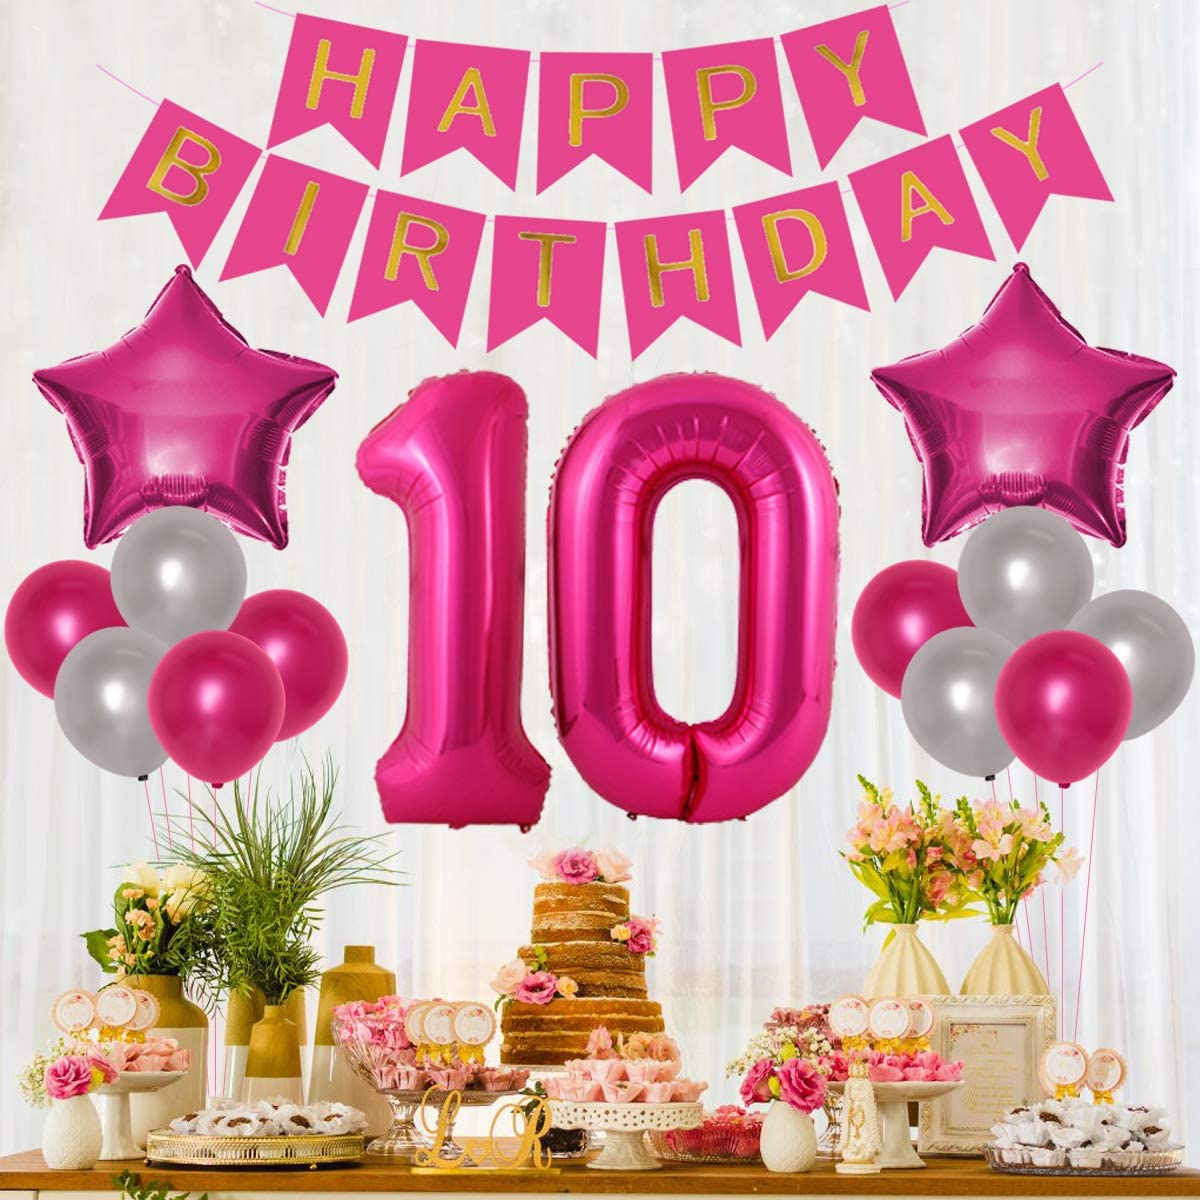 Jollyboom 10th Birthday Decorations for Girls Hot Pink Double Digits 10th Birthday Party Balloons Banner Cake Topper Hang Swirl